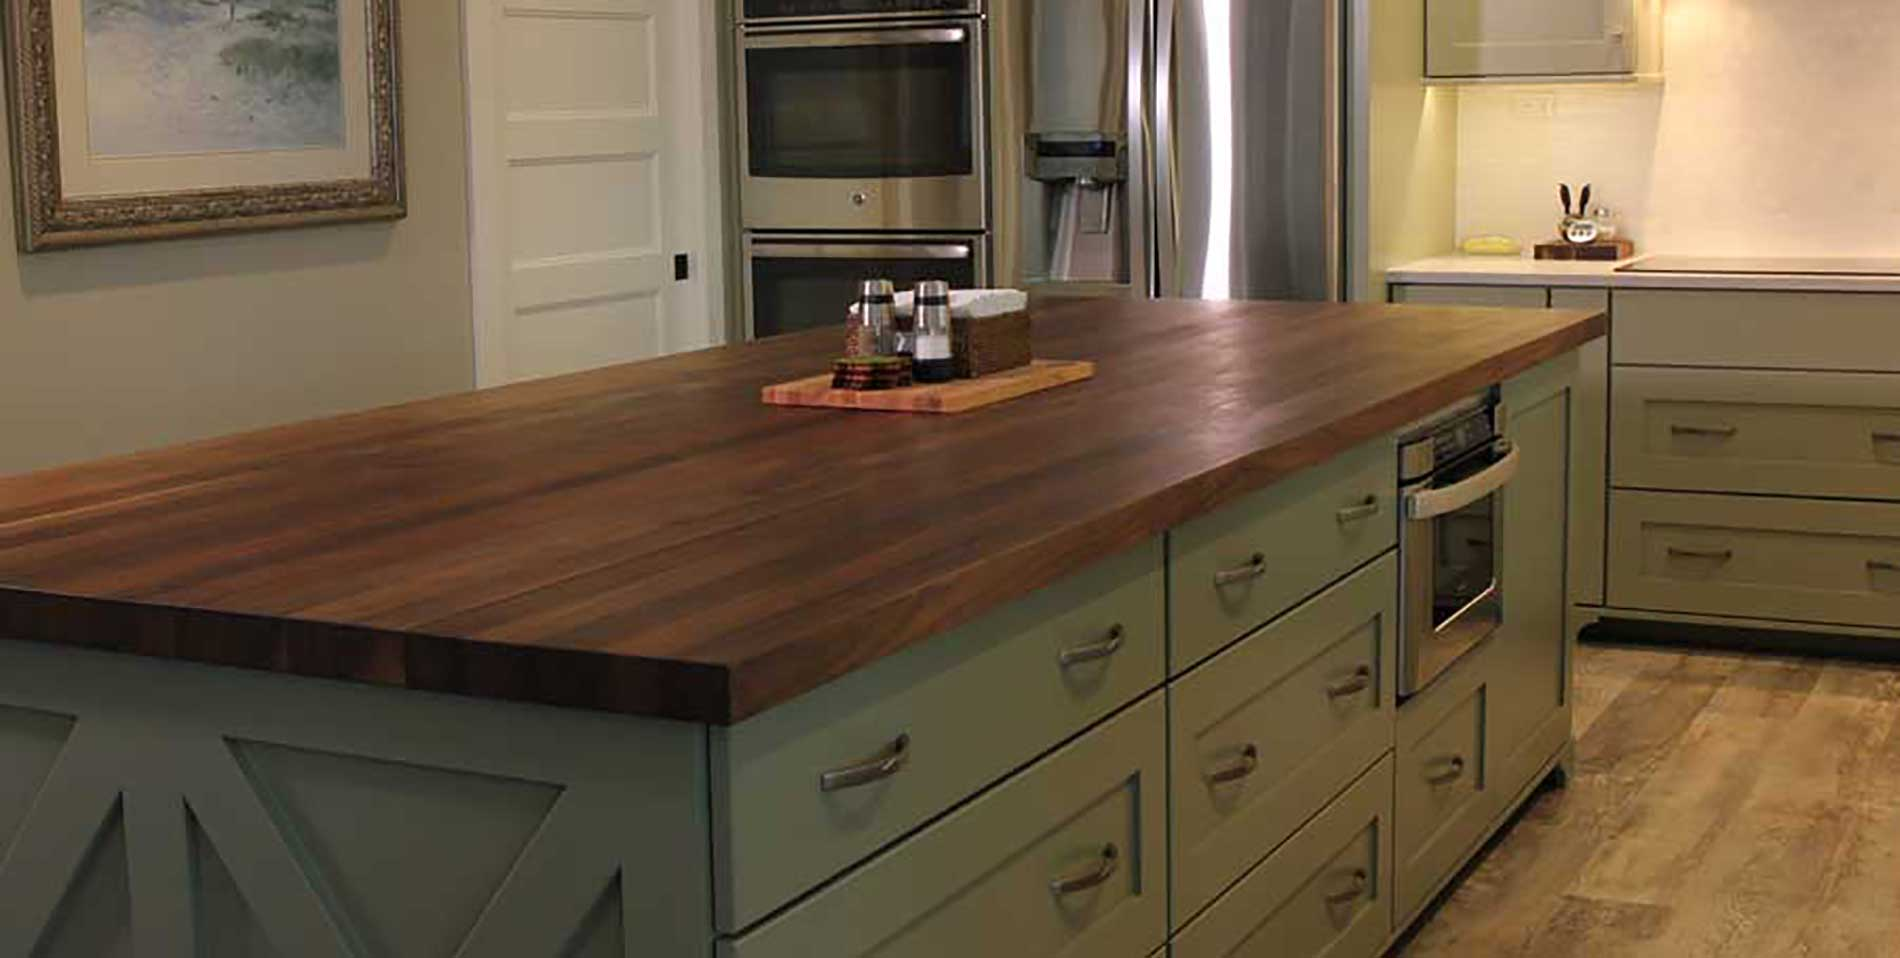 Black Walnut Kitchen Island Mcclure Block Butcher Block And Hardwood Kitchen Counter Tops And Hardwood Kitchen Islands Butcher Block Chopping Blocks And Cutting Boards